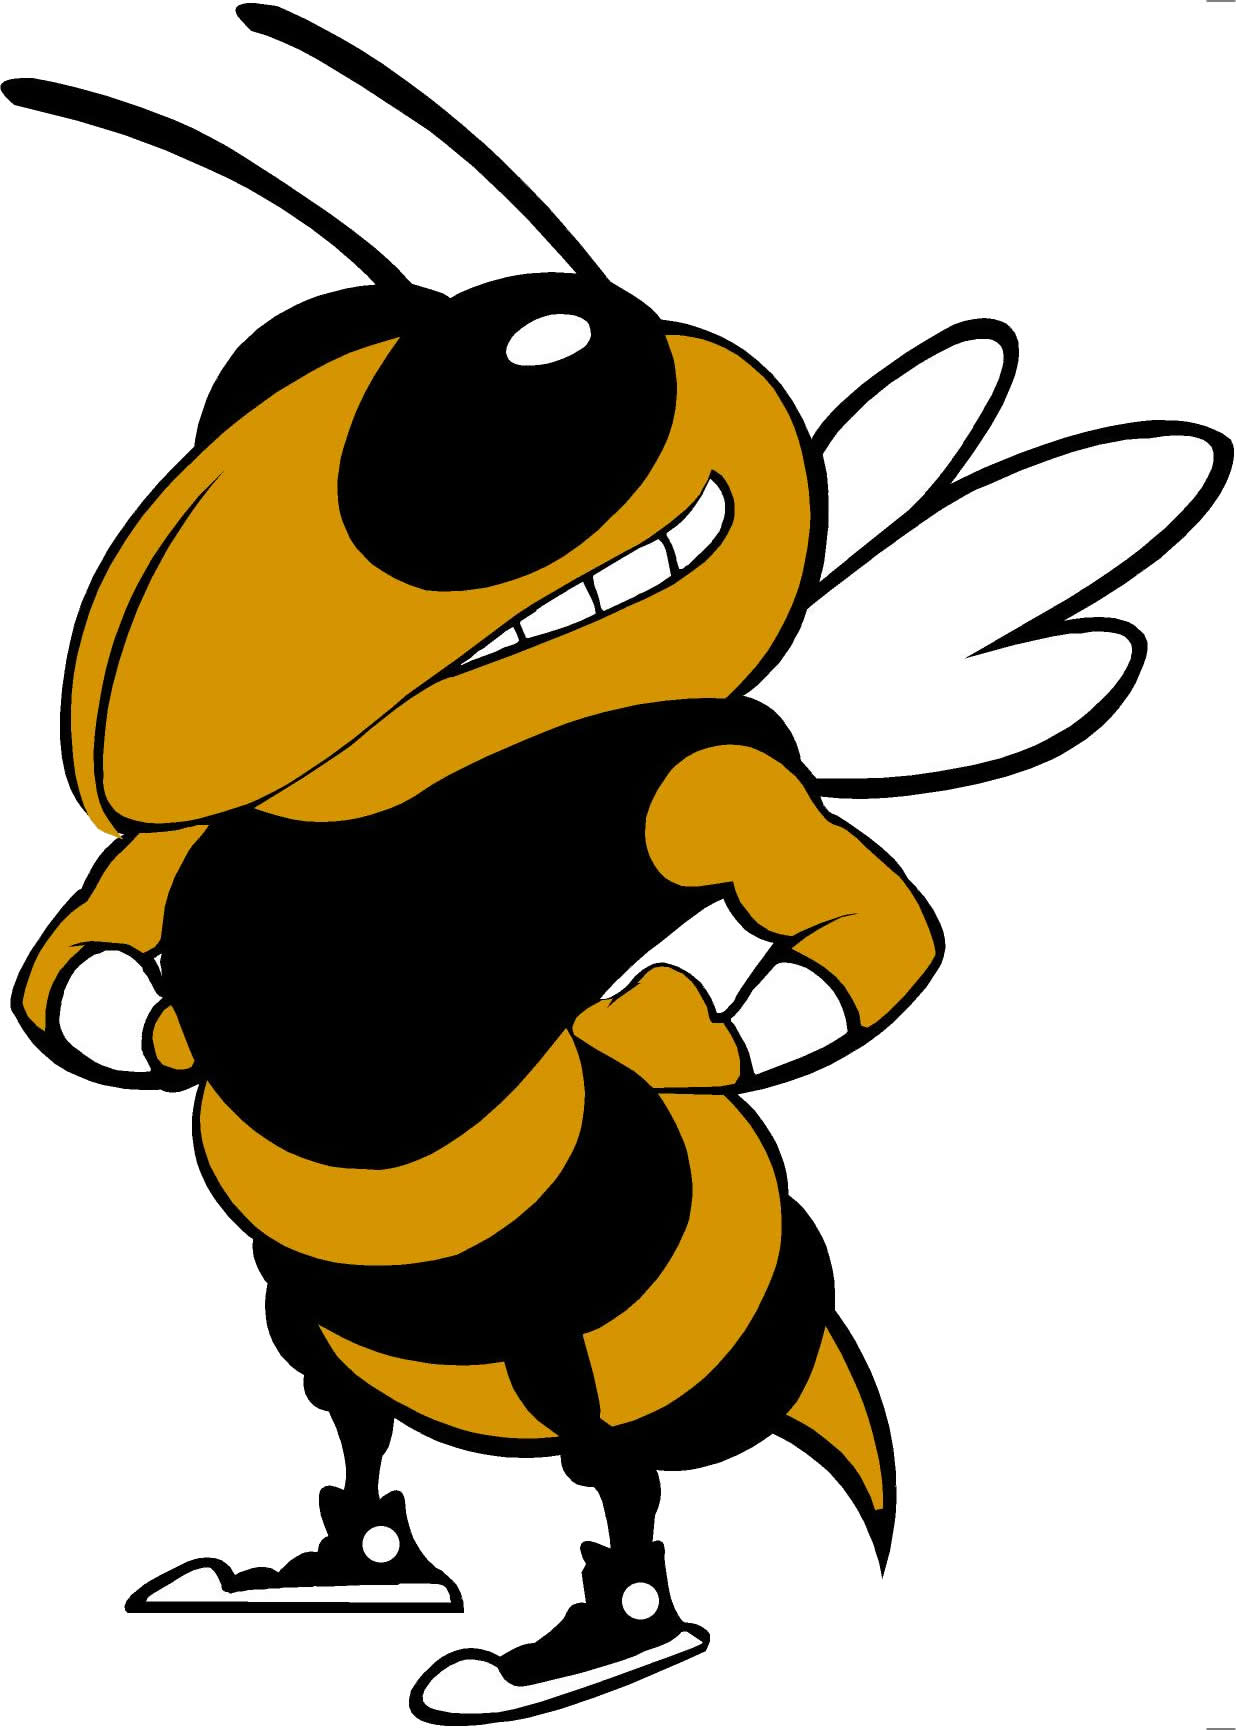 yellow jacket athletics thomas county central high school